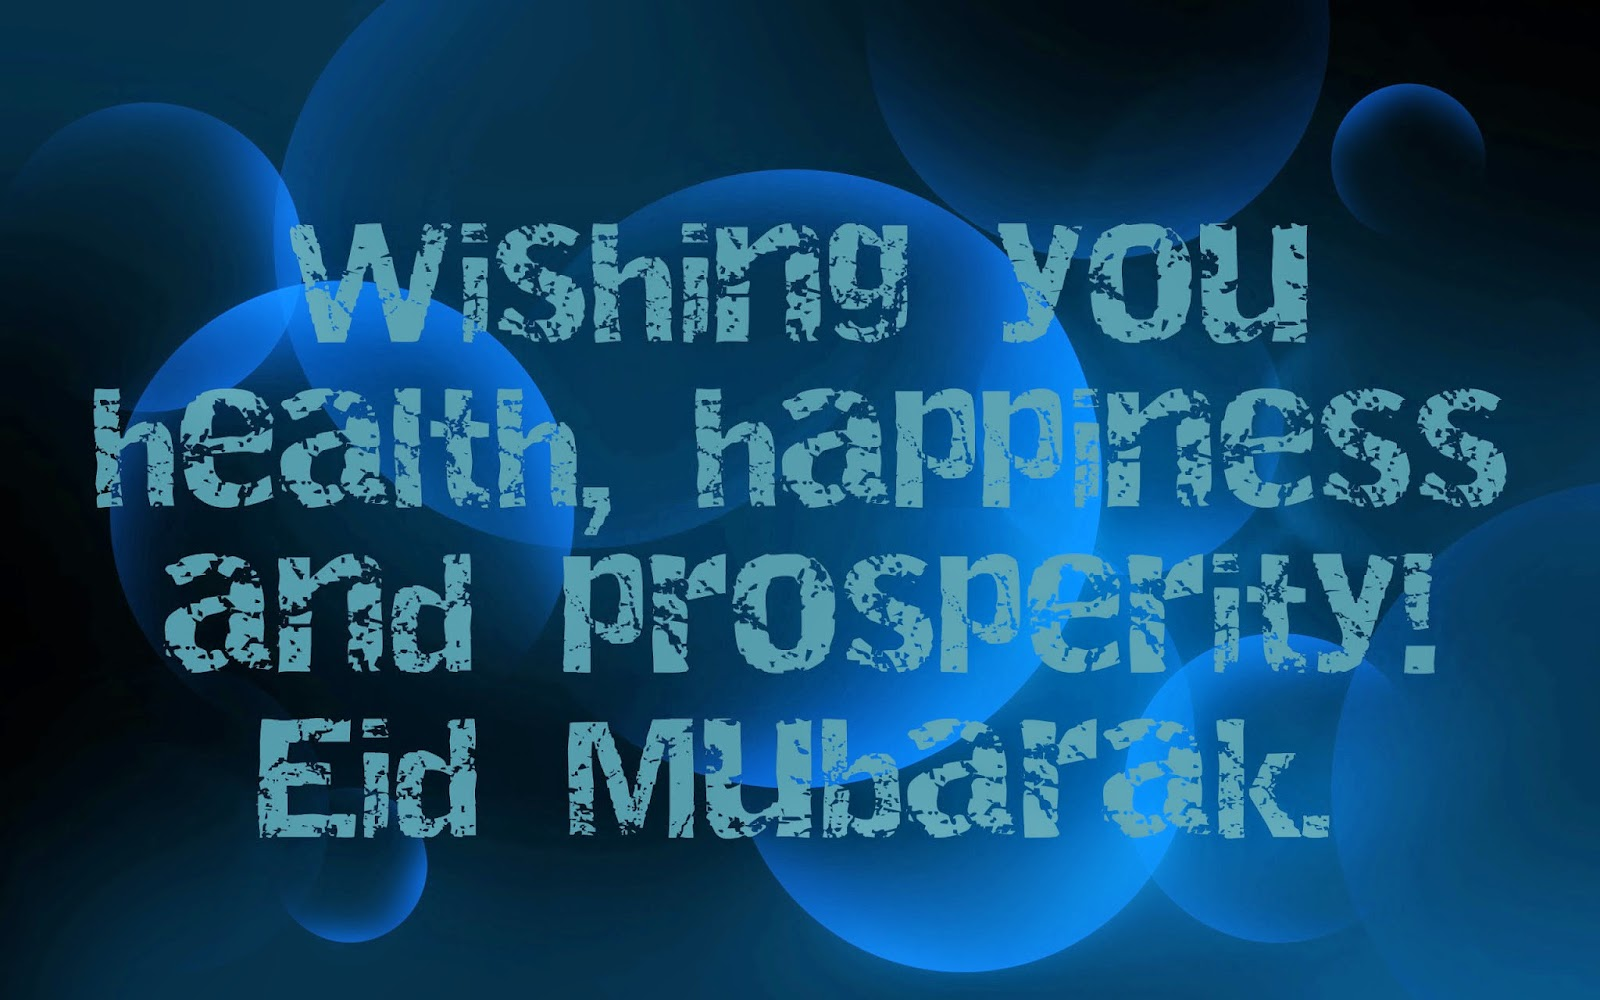 Popular Tamil Eid Al-Fitr Greeting - Happy-Eid-ul-Fitr-Mubarak-2015-images-wishes-wallpapers  You Should Have_72624 .jpg